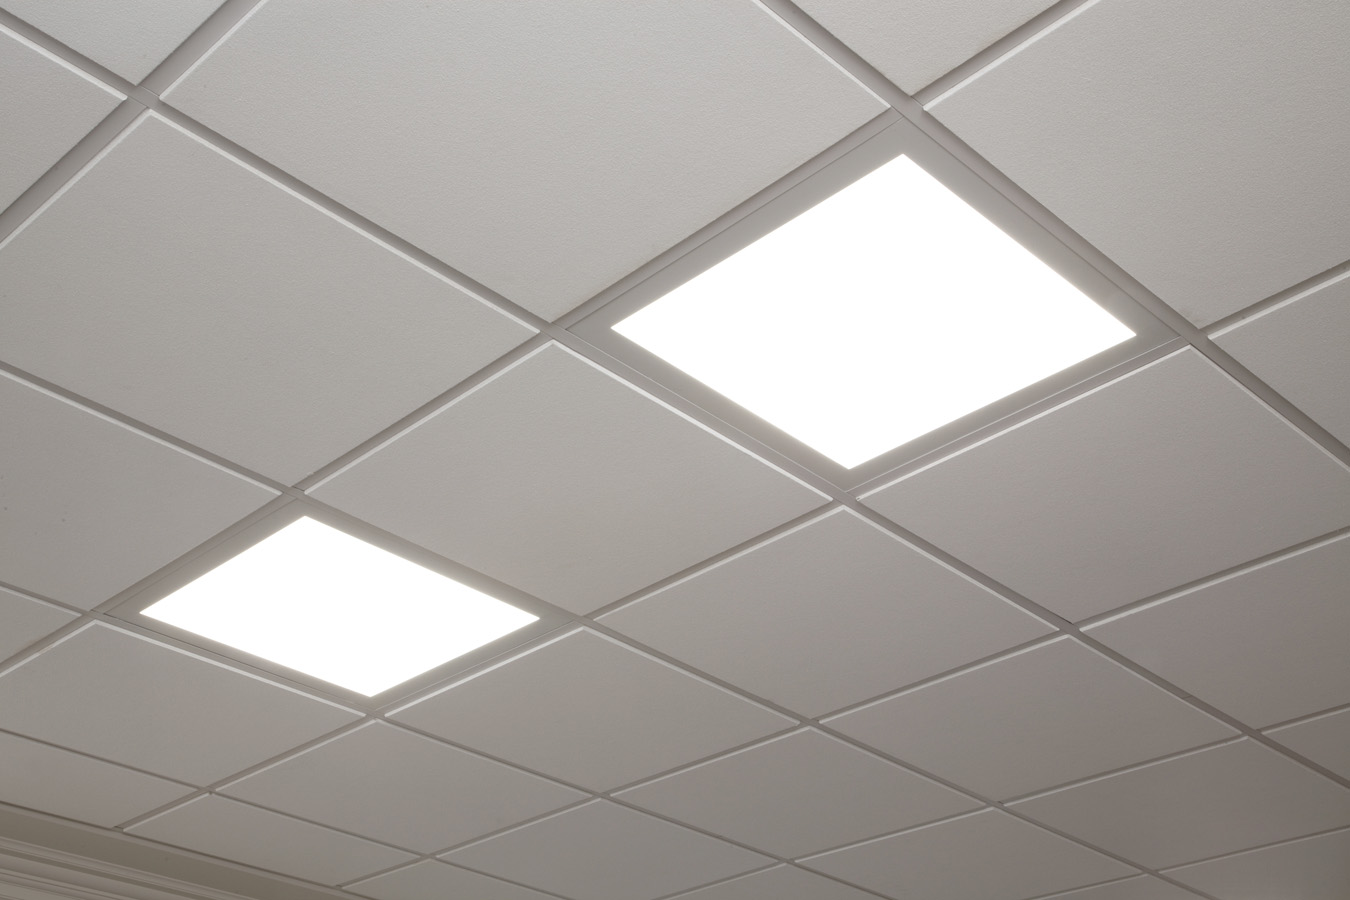 Not Your Traditional Ceiling Lights: GE Luminationu2122 LED Luminaires change the commercial ...